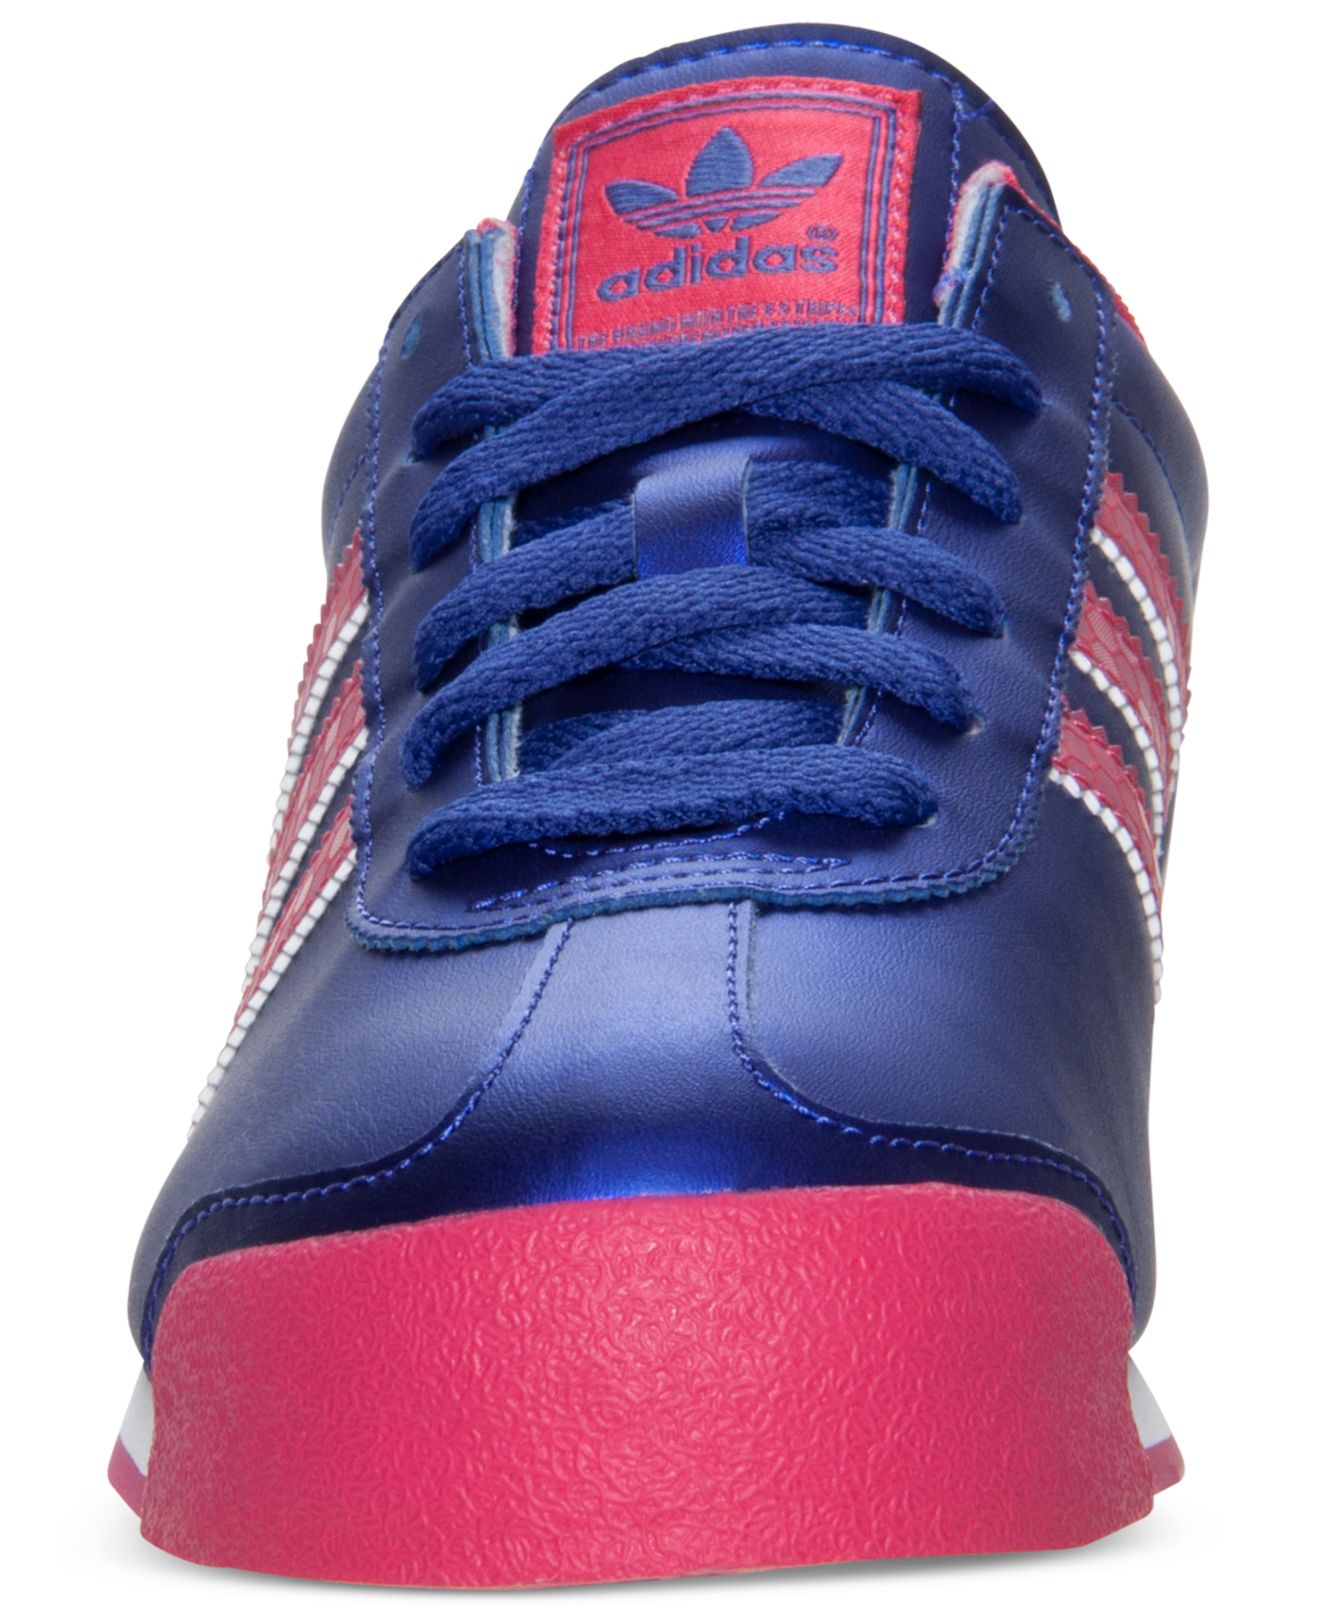 pink and blue adidas samoa